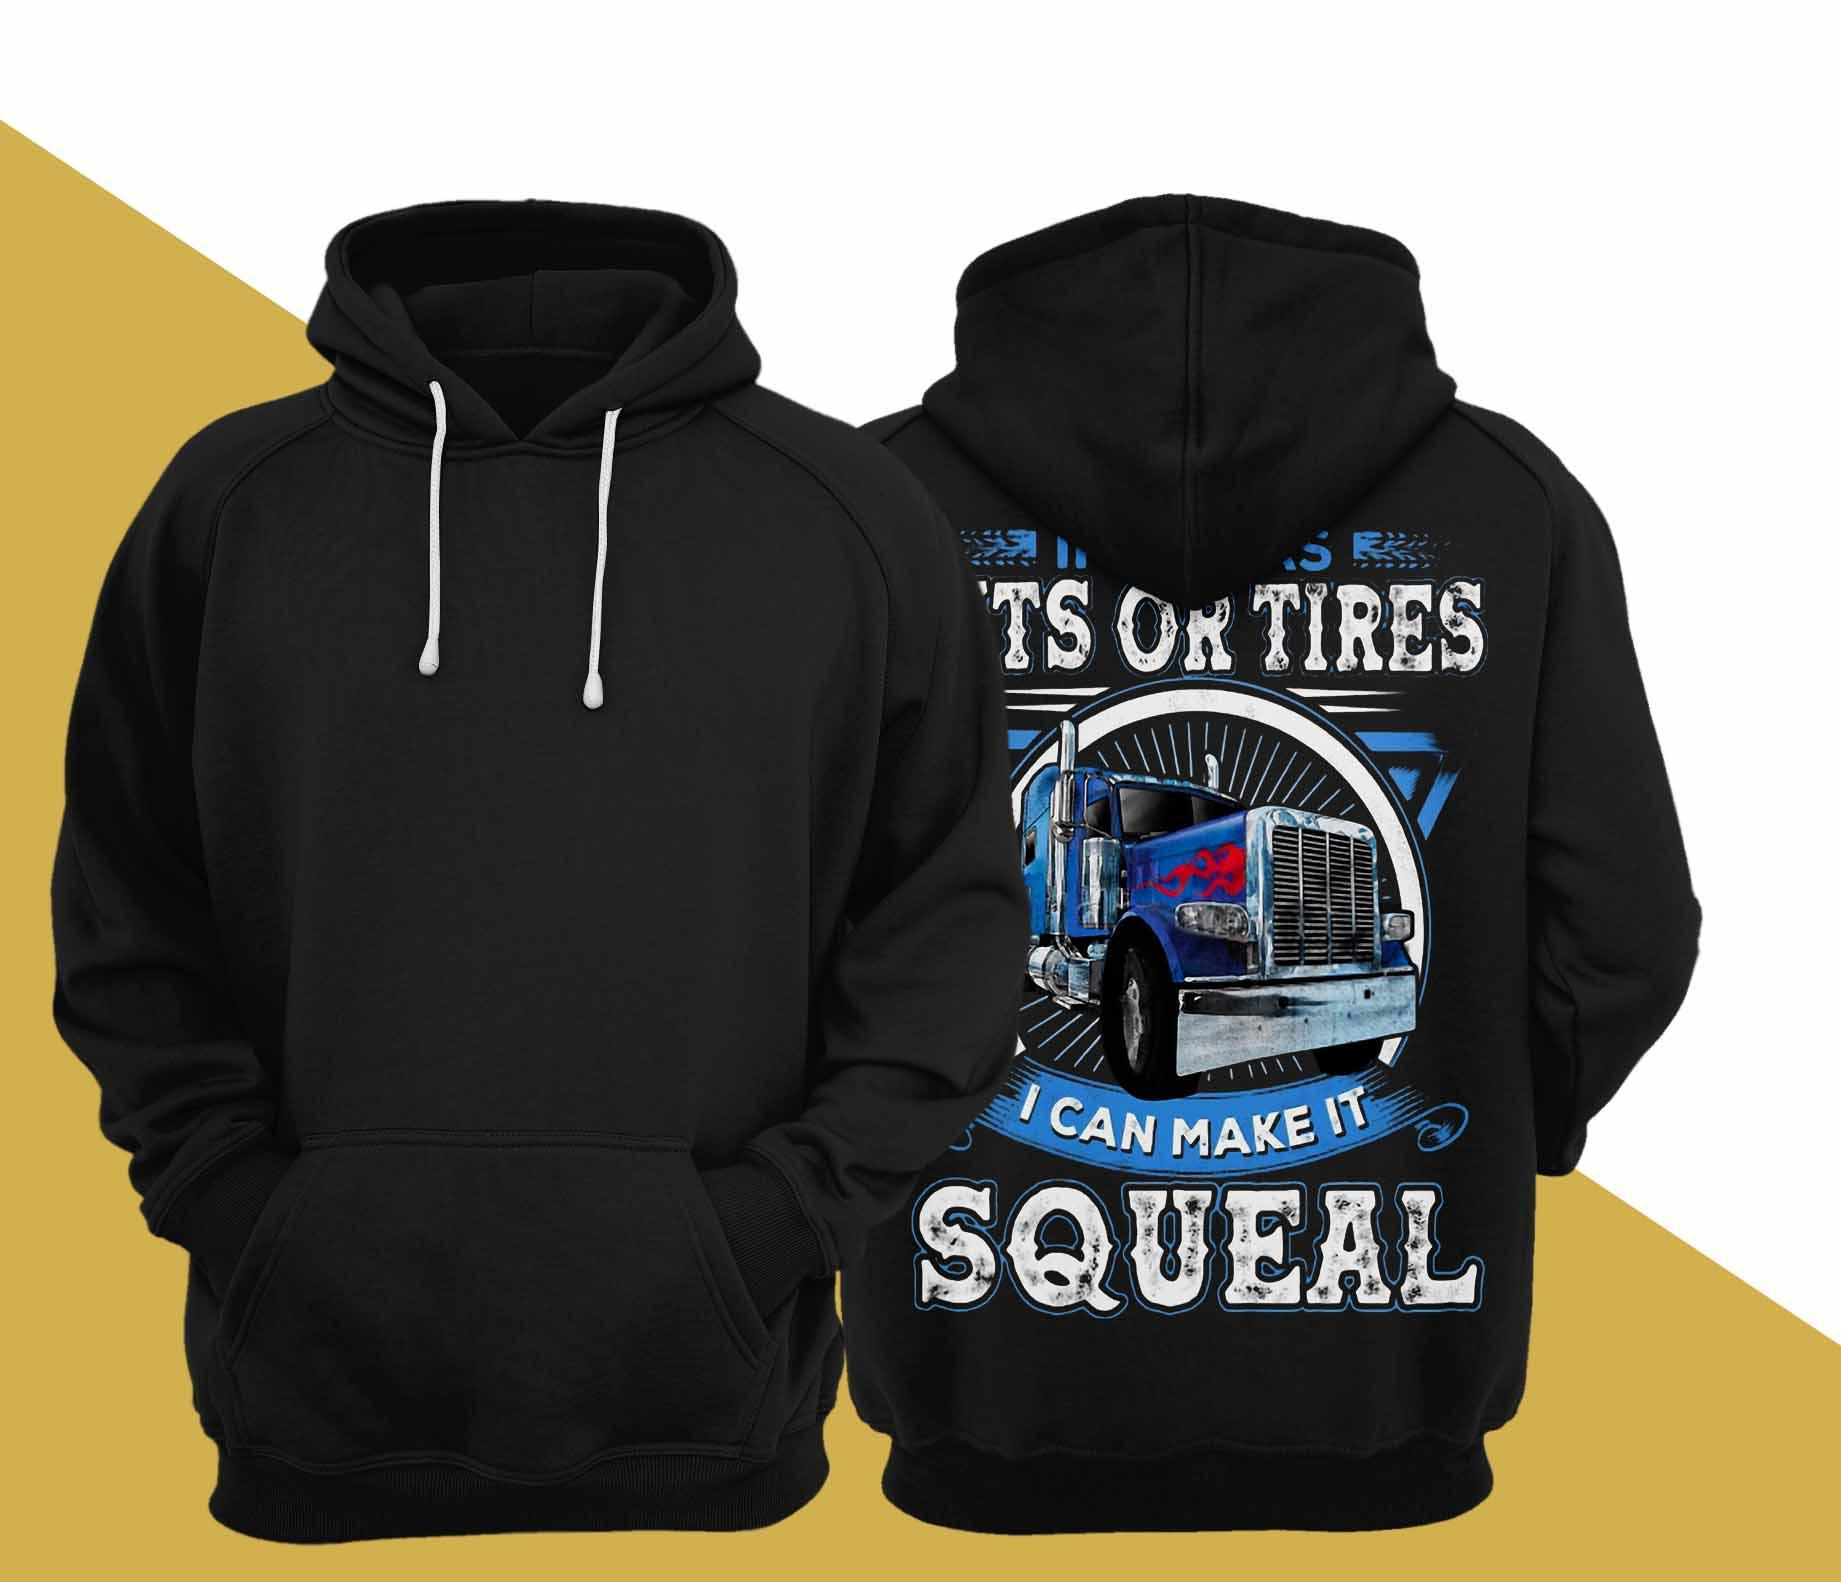 If It Has Tits Or Tires I Can Make It Squeal Hoodie